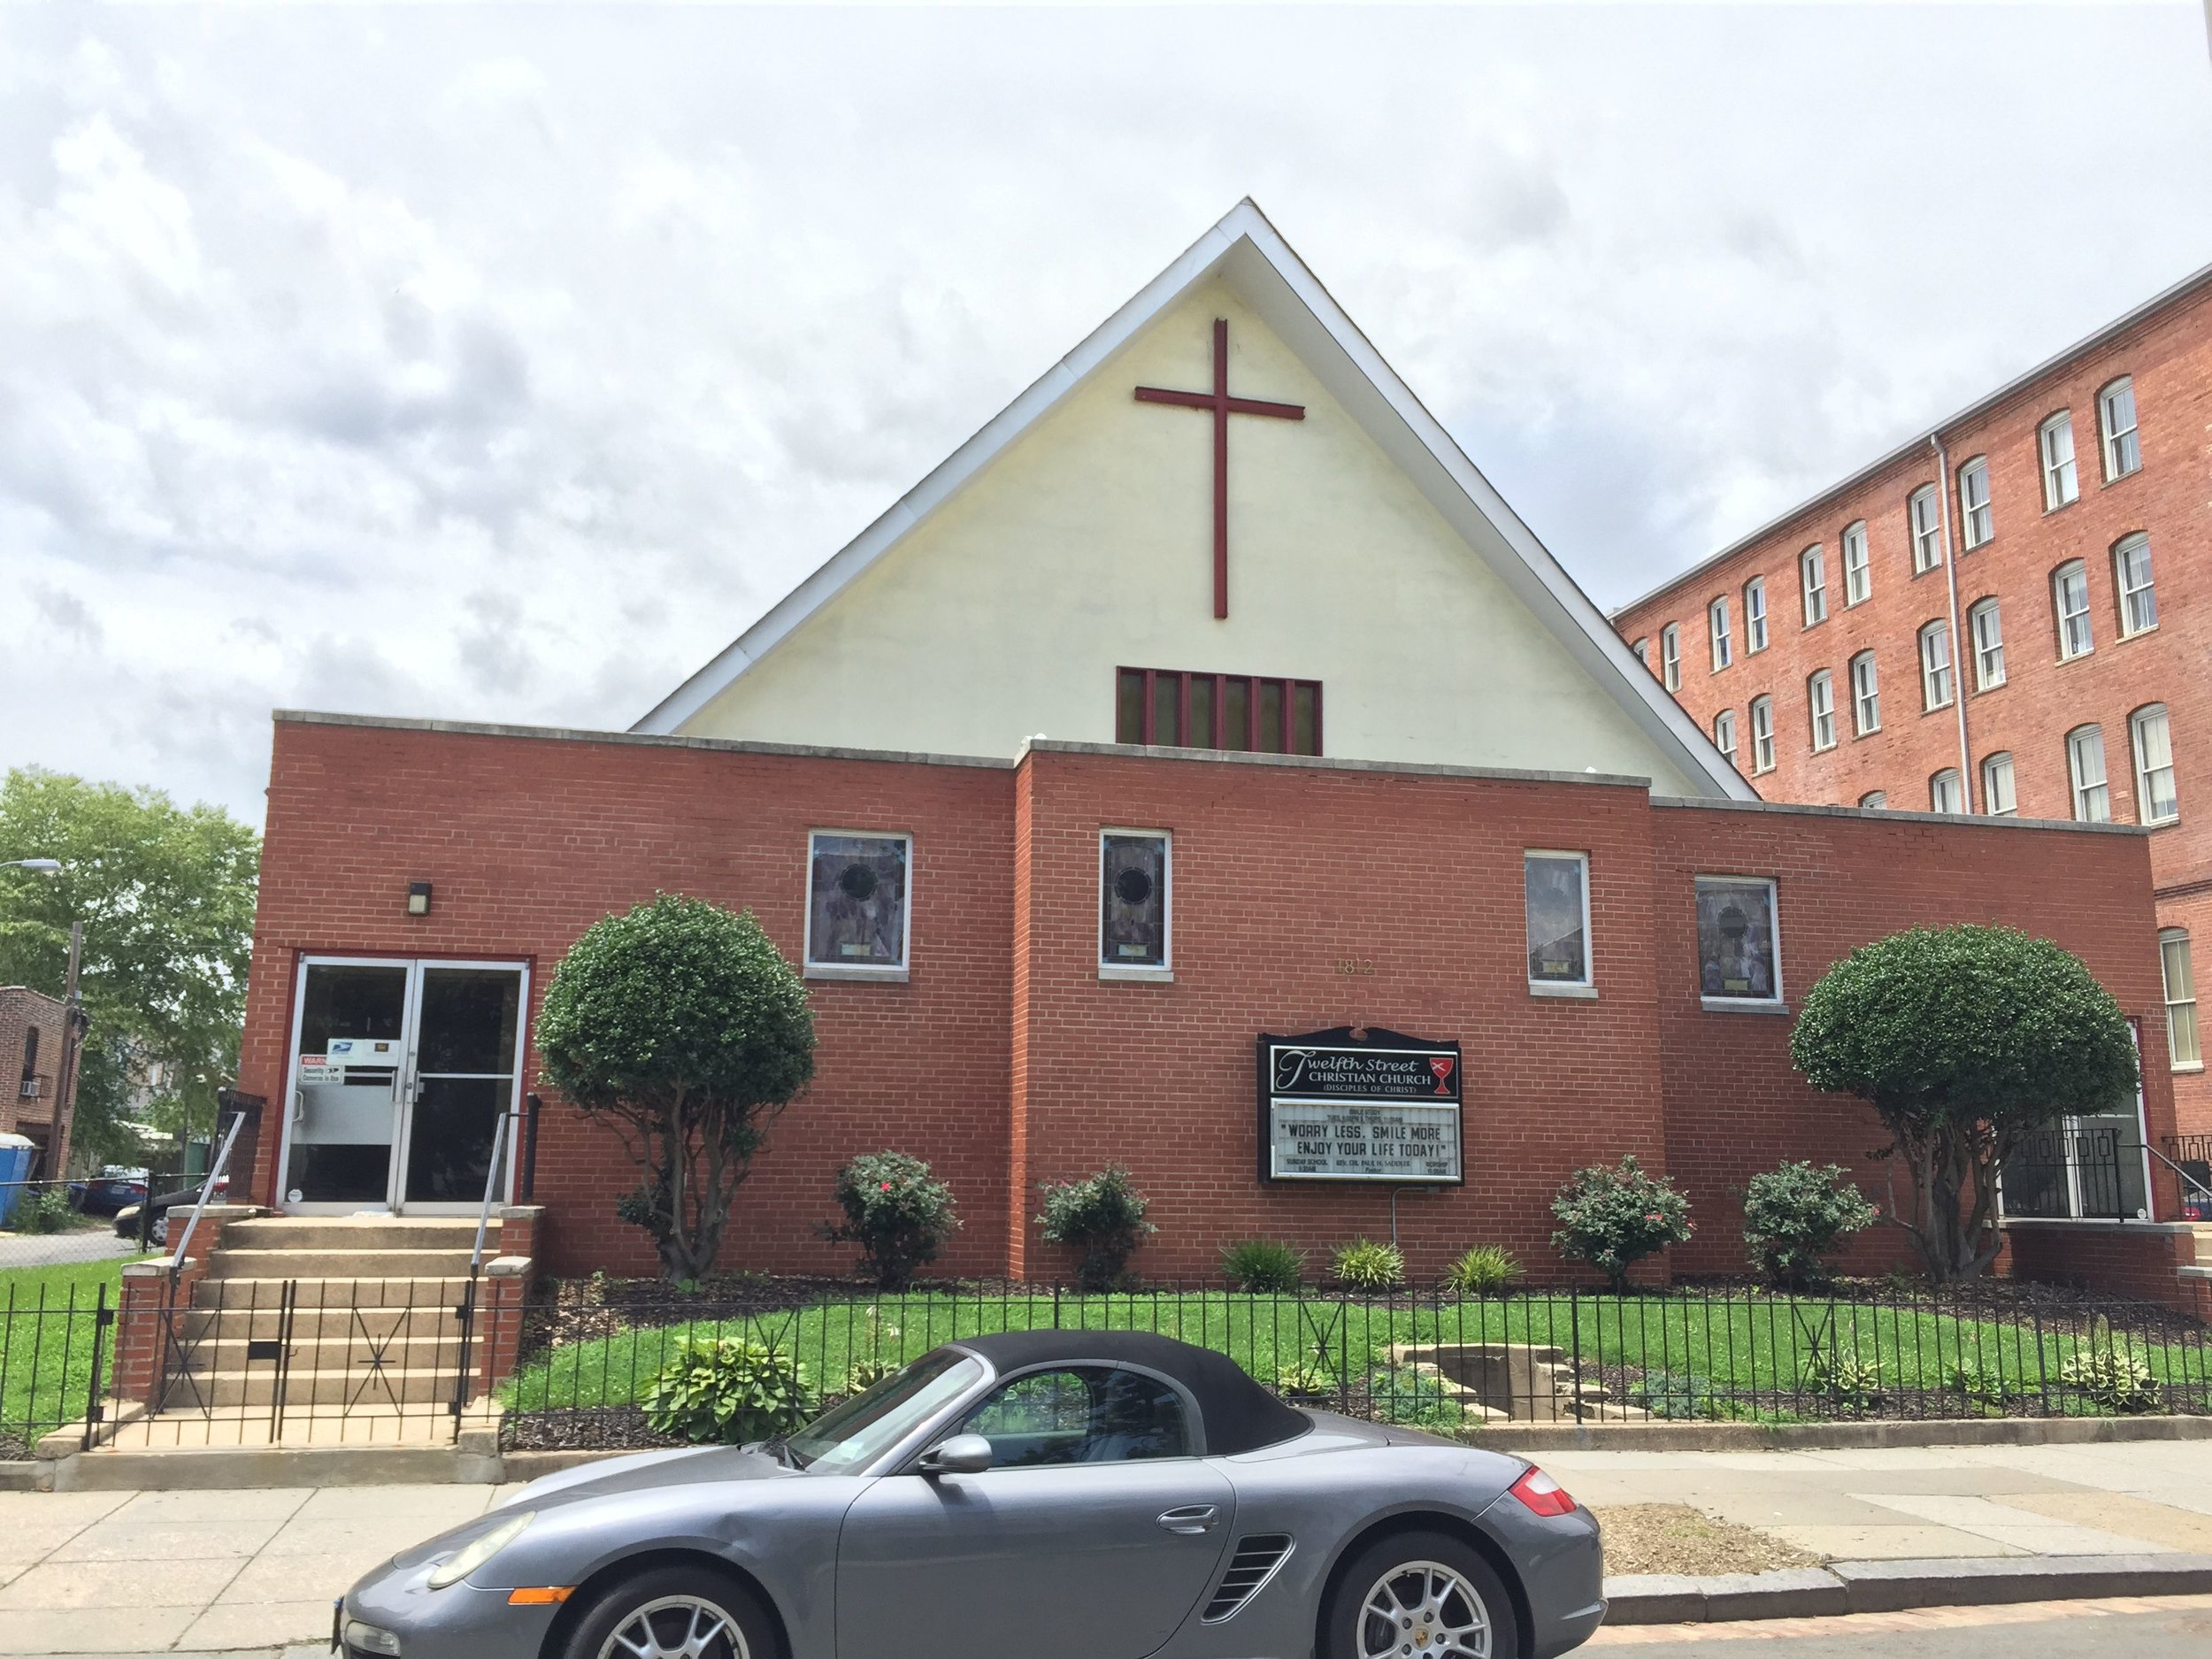 Twelfth Street Christian Church - Senior Pastor: The Rev. Dr. Paul SaddlerPhone: 202-265-4494Fax: 202-265-4340E-mail: eMail UsAddress:1812 12th Street NWWashington, District of Columbia 20009Get Map!